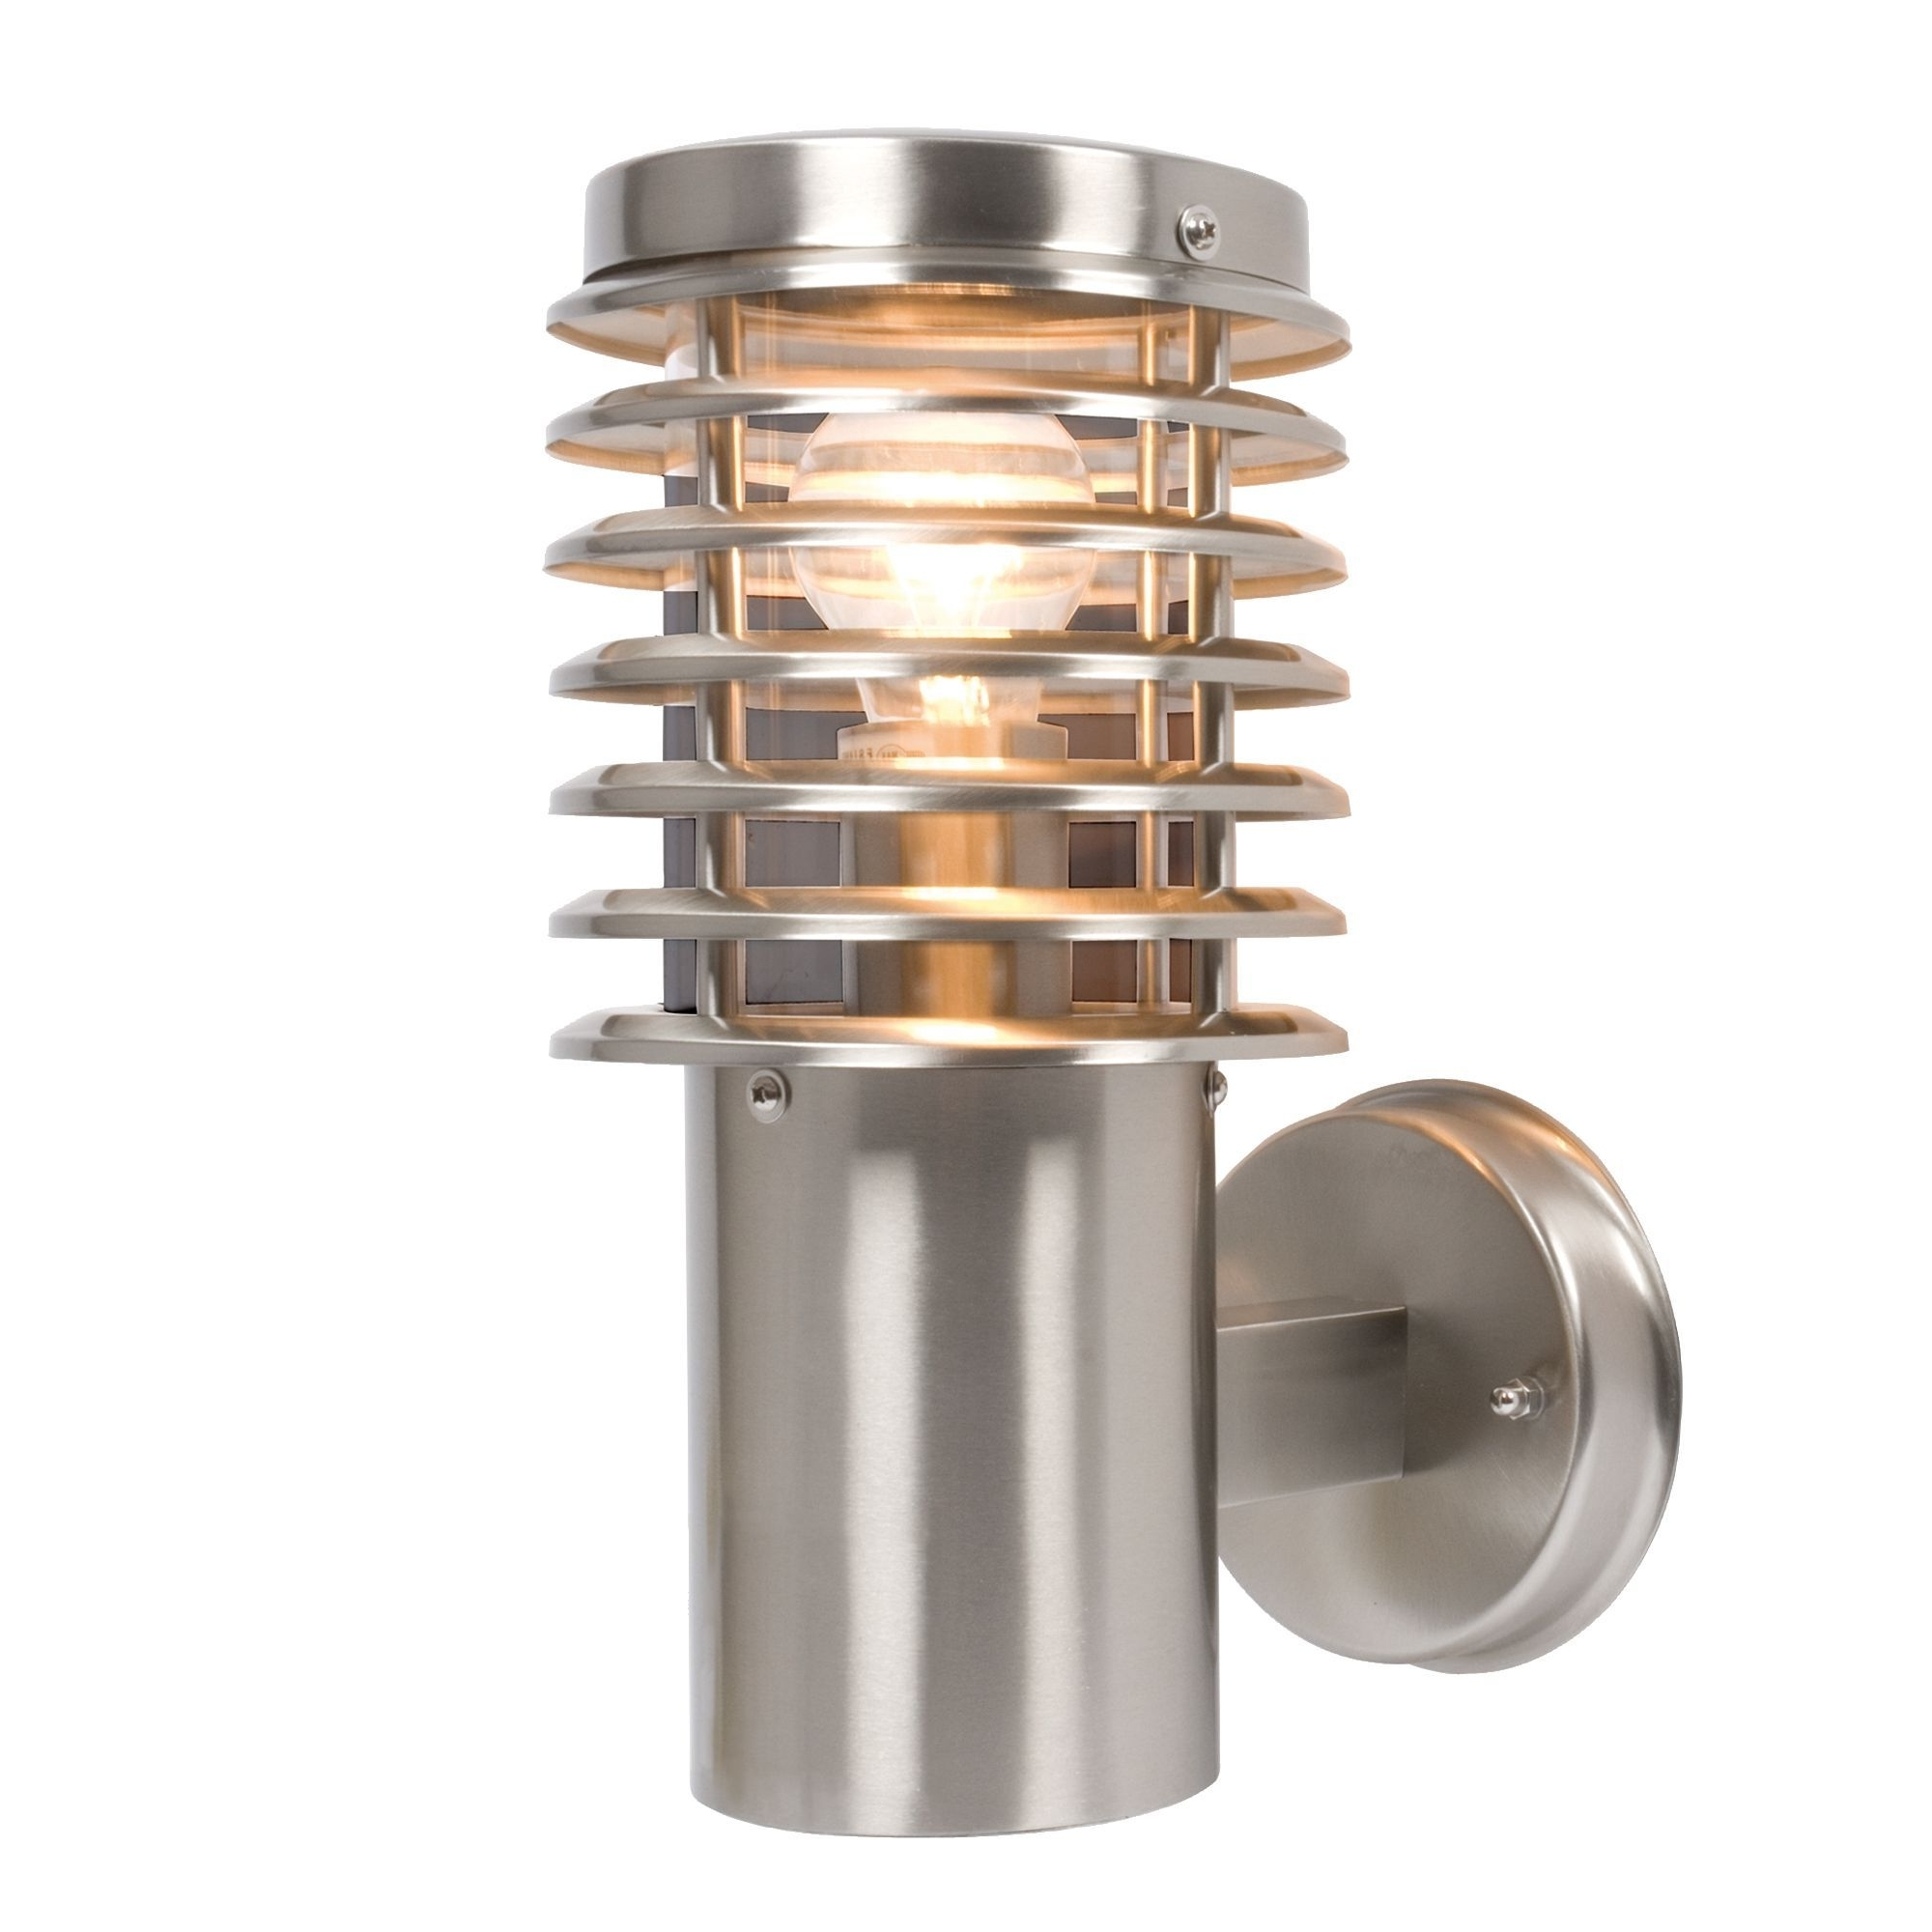 Led Outdoor Raccoon Wall Lights With Motion Detector Within Well Known Clipper Stainless Steel Mains Powered External Wall Light (View 19 of 20)